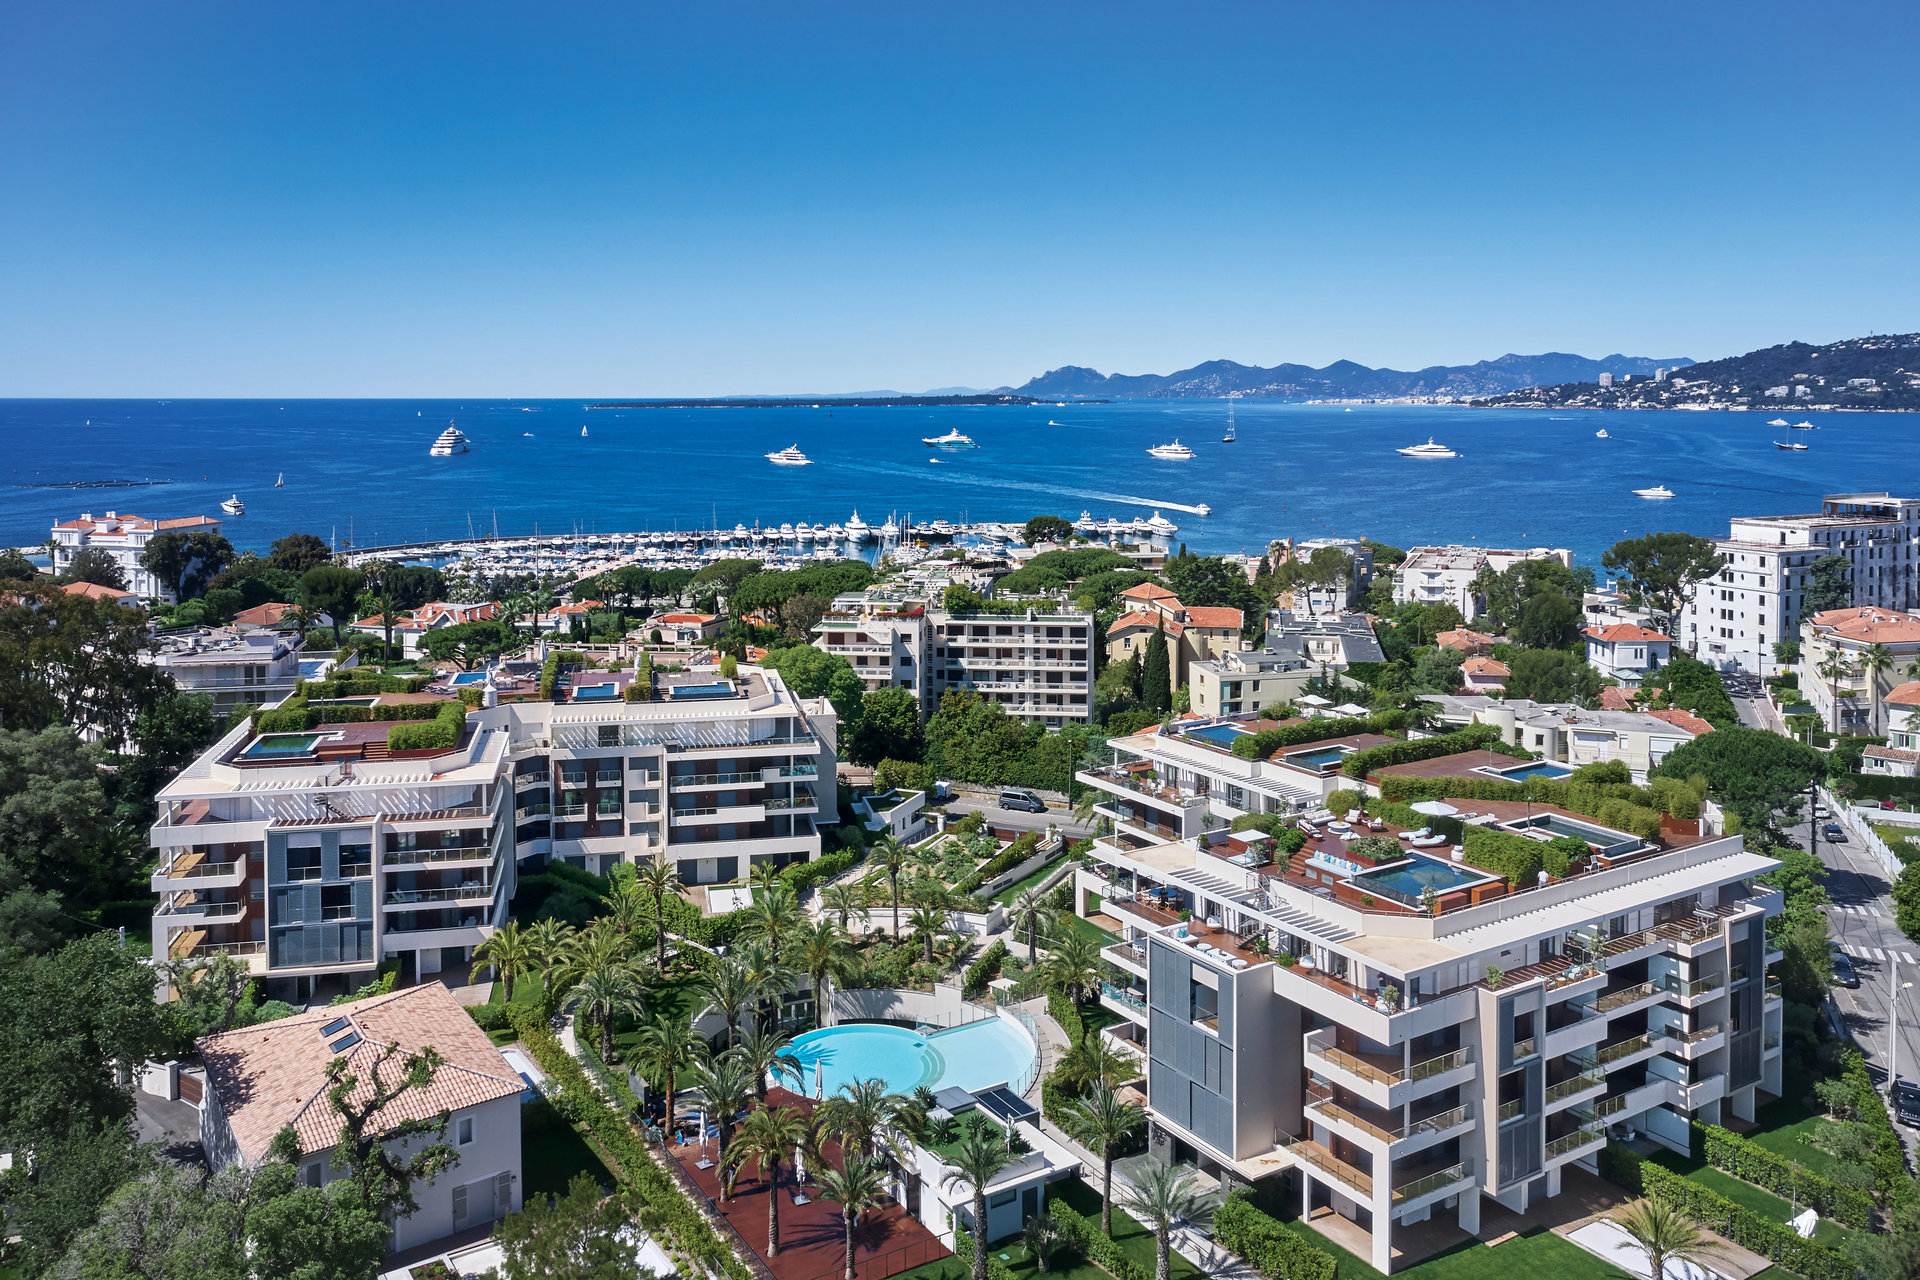 CAP D'ANTIBES -  New 2 bedroom apartement of 86m2 with large terraces in exceptional résidence